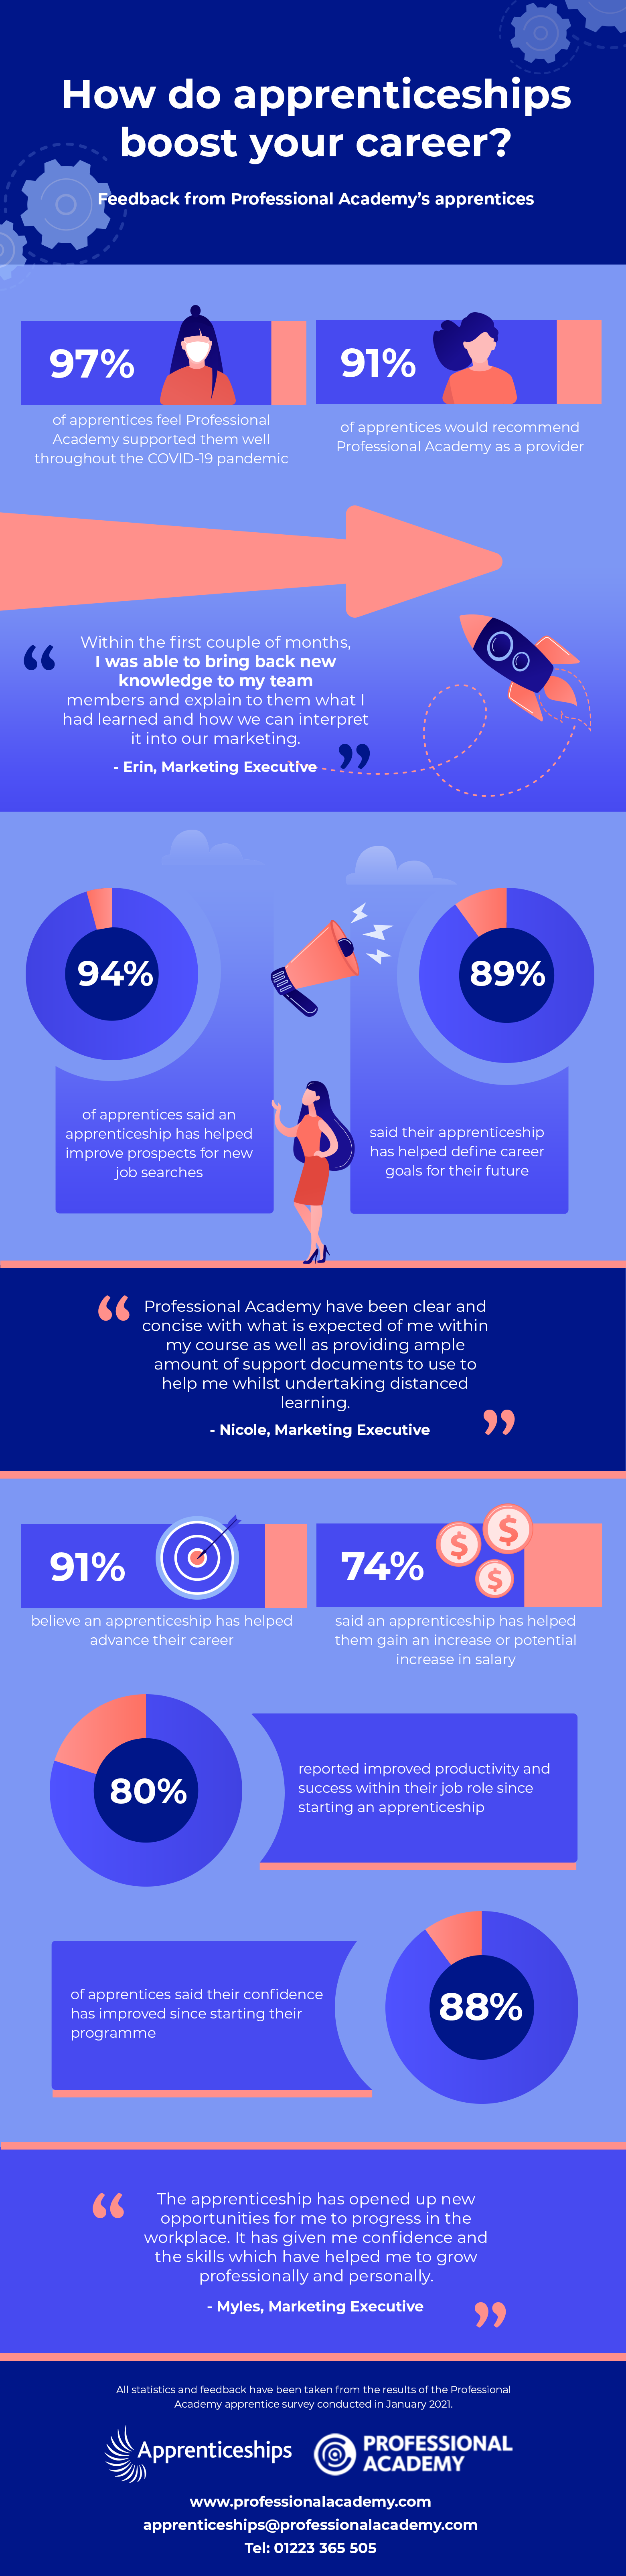 How do apprenticeships boost your career infographic